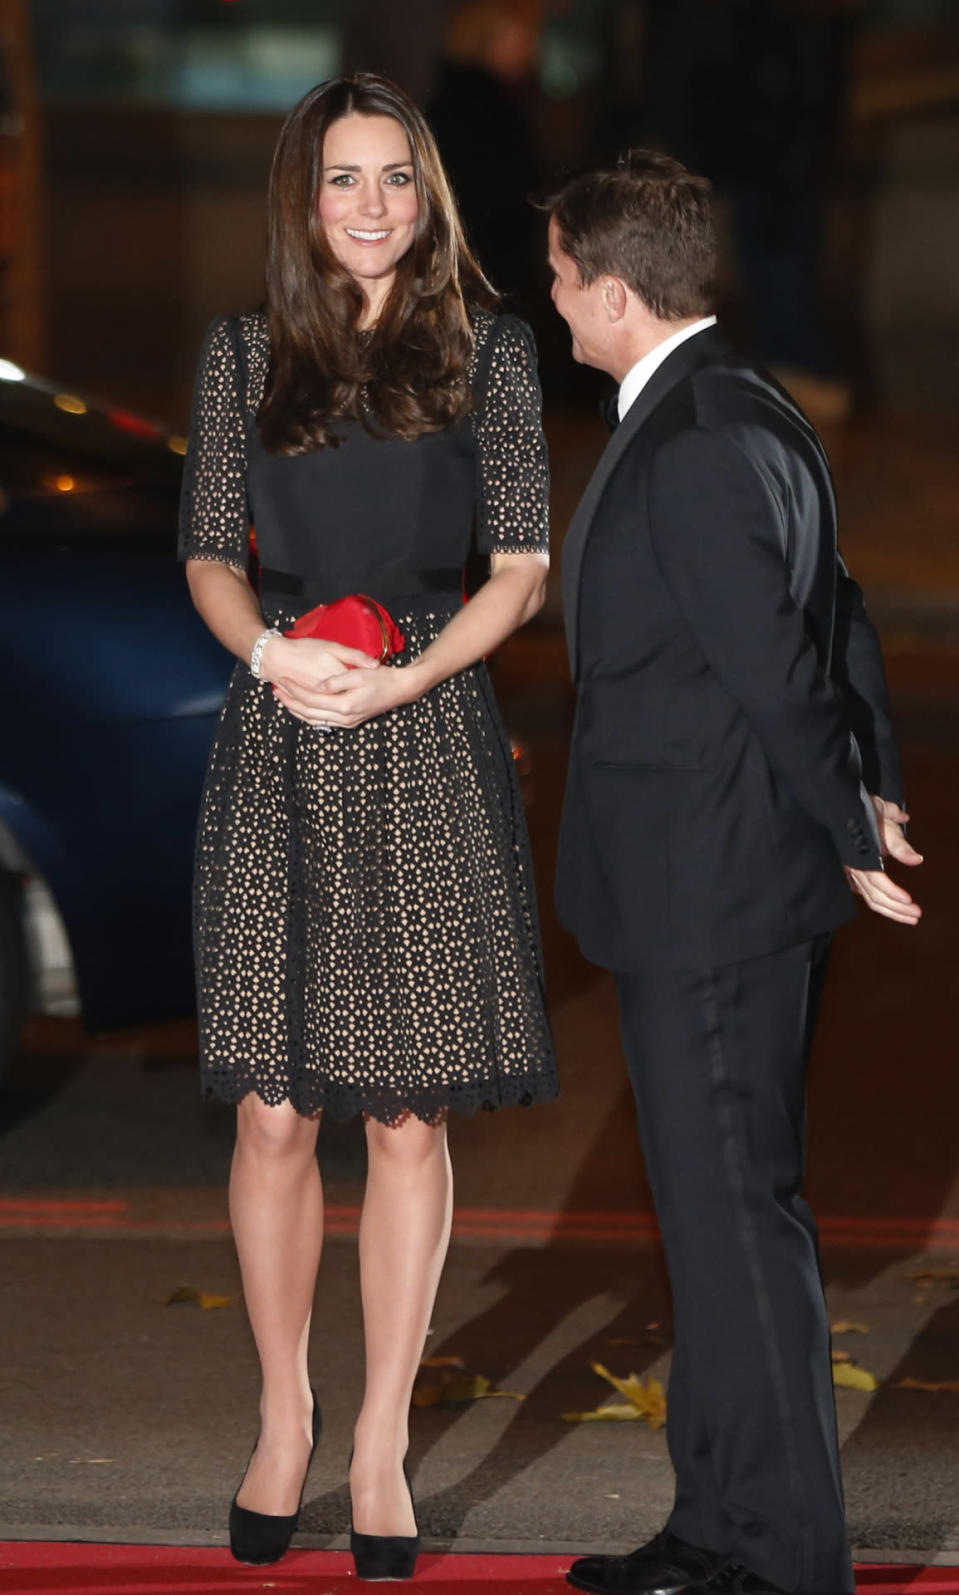 <p>For a sports gala in London, the Duchess chose a shorter black Temperley London dress from the label's AW12 collection. She teamed the look with Jimmy Choo pumps and a red Alexander McQueen bow clutch.</p><p><i>[Photo: PA]</i></p>